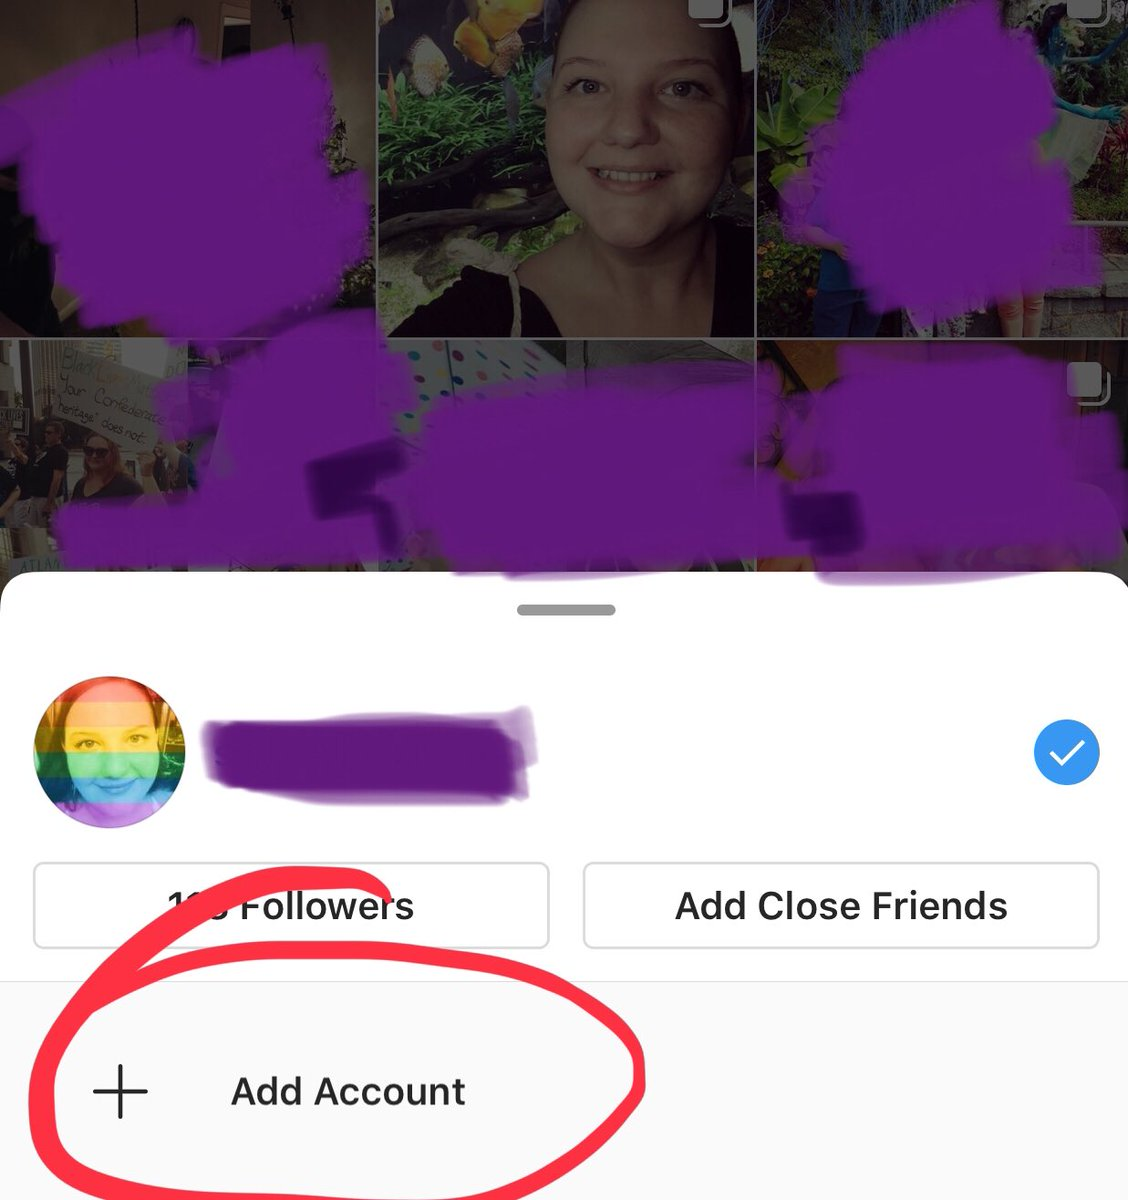 Was thinking of doing a Stina instagram. I own 1 phone (but 2 numbers) and currently have a personal instagram. If I push that botton to add an account, will my family be able to see my Stina account, & will my clients be able to see my personal account? How do I keep separate?